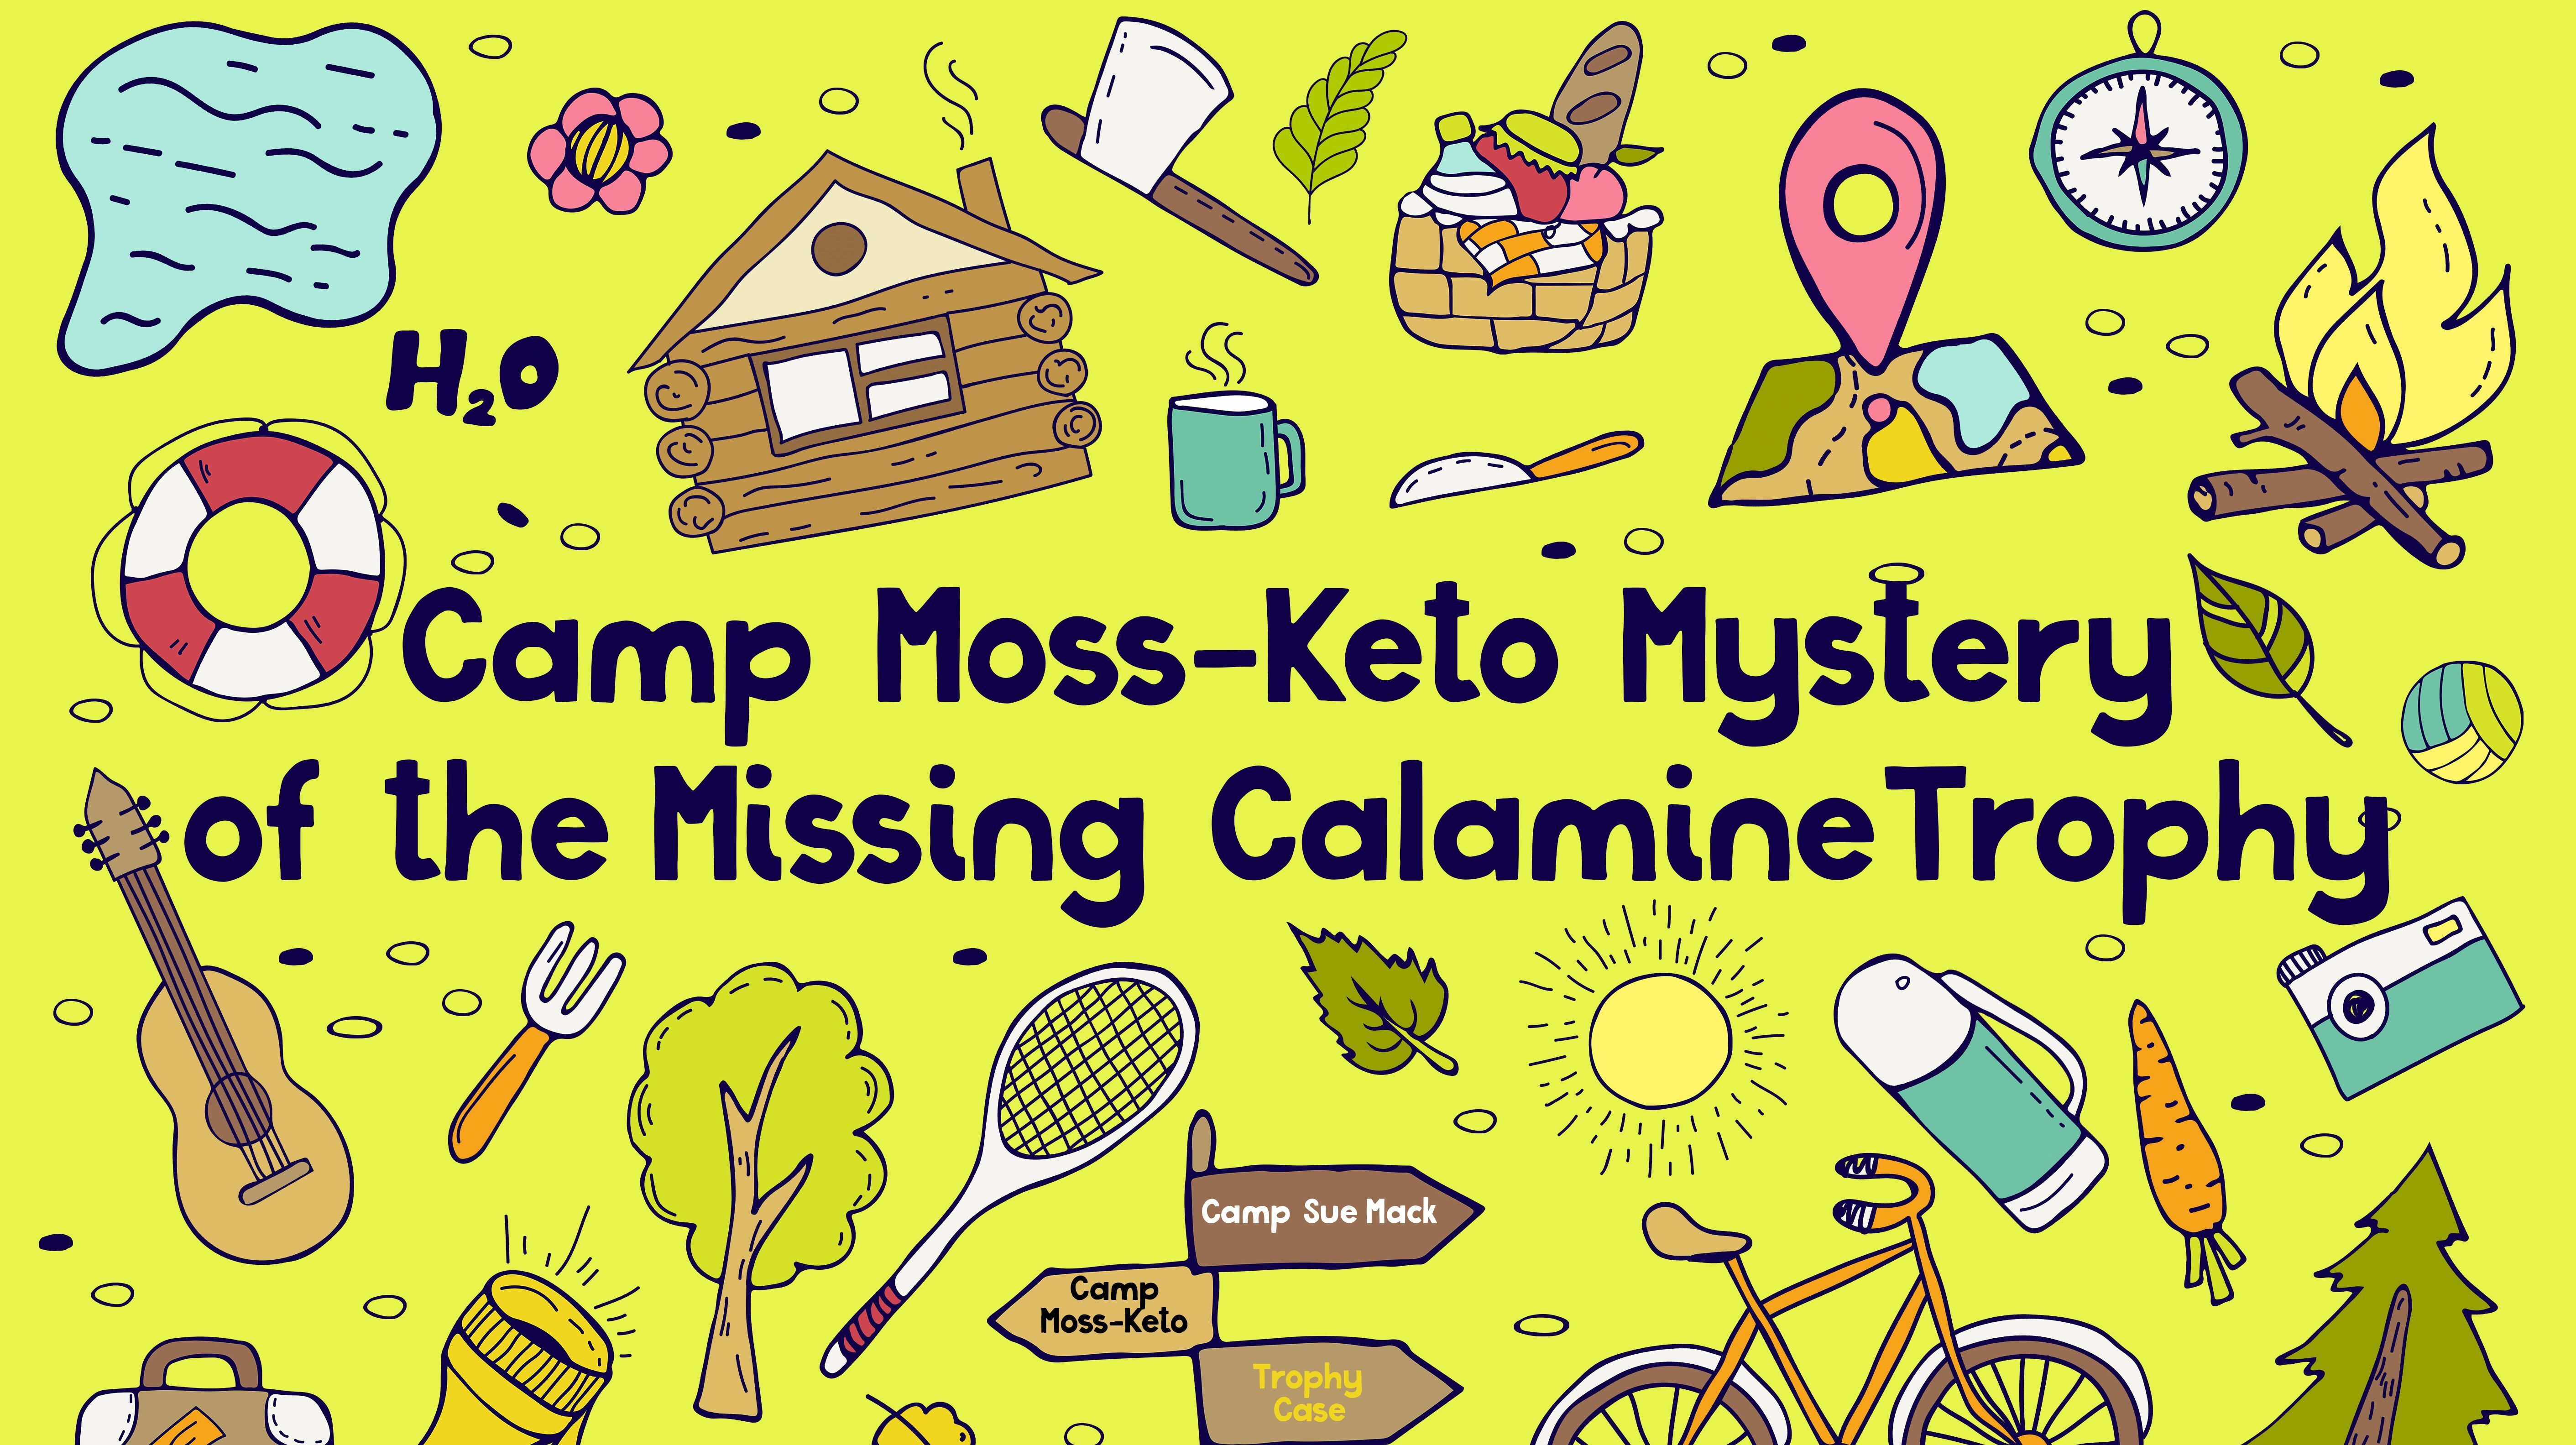 Camp Moss-Keto Mystery of the Missing Trophy (Virtual Mystery Game)